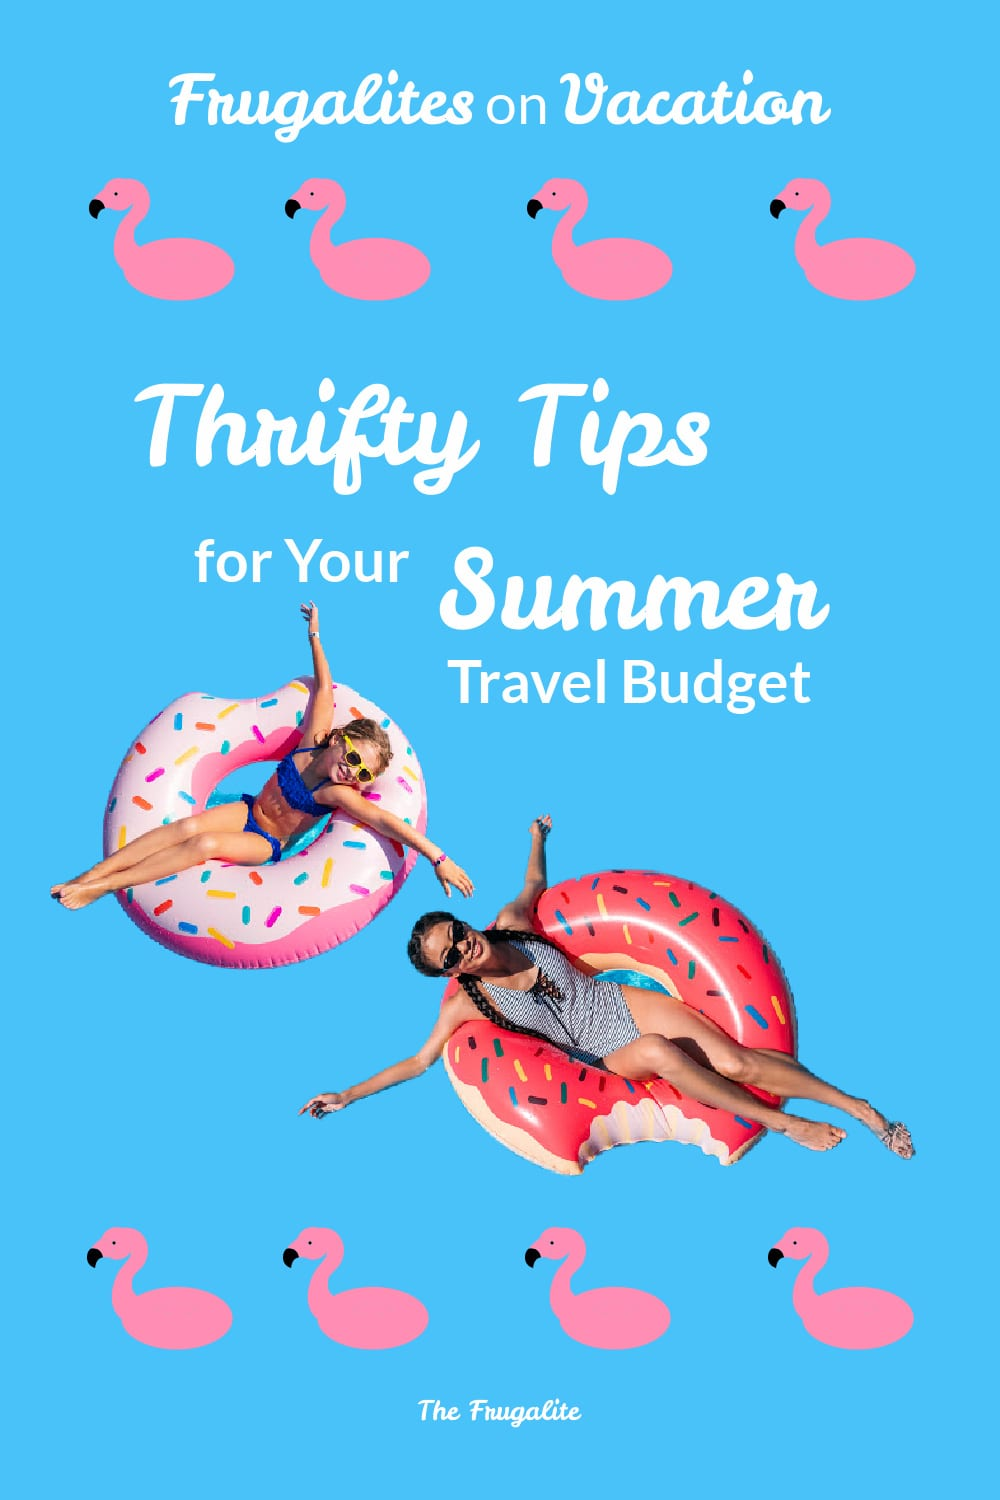 Frugalites on Vacation: 10 Thrifty Tips for Your Summer Travel Budget